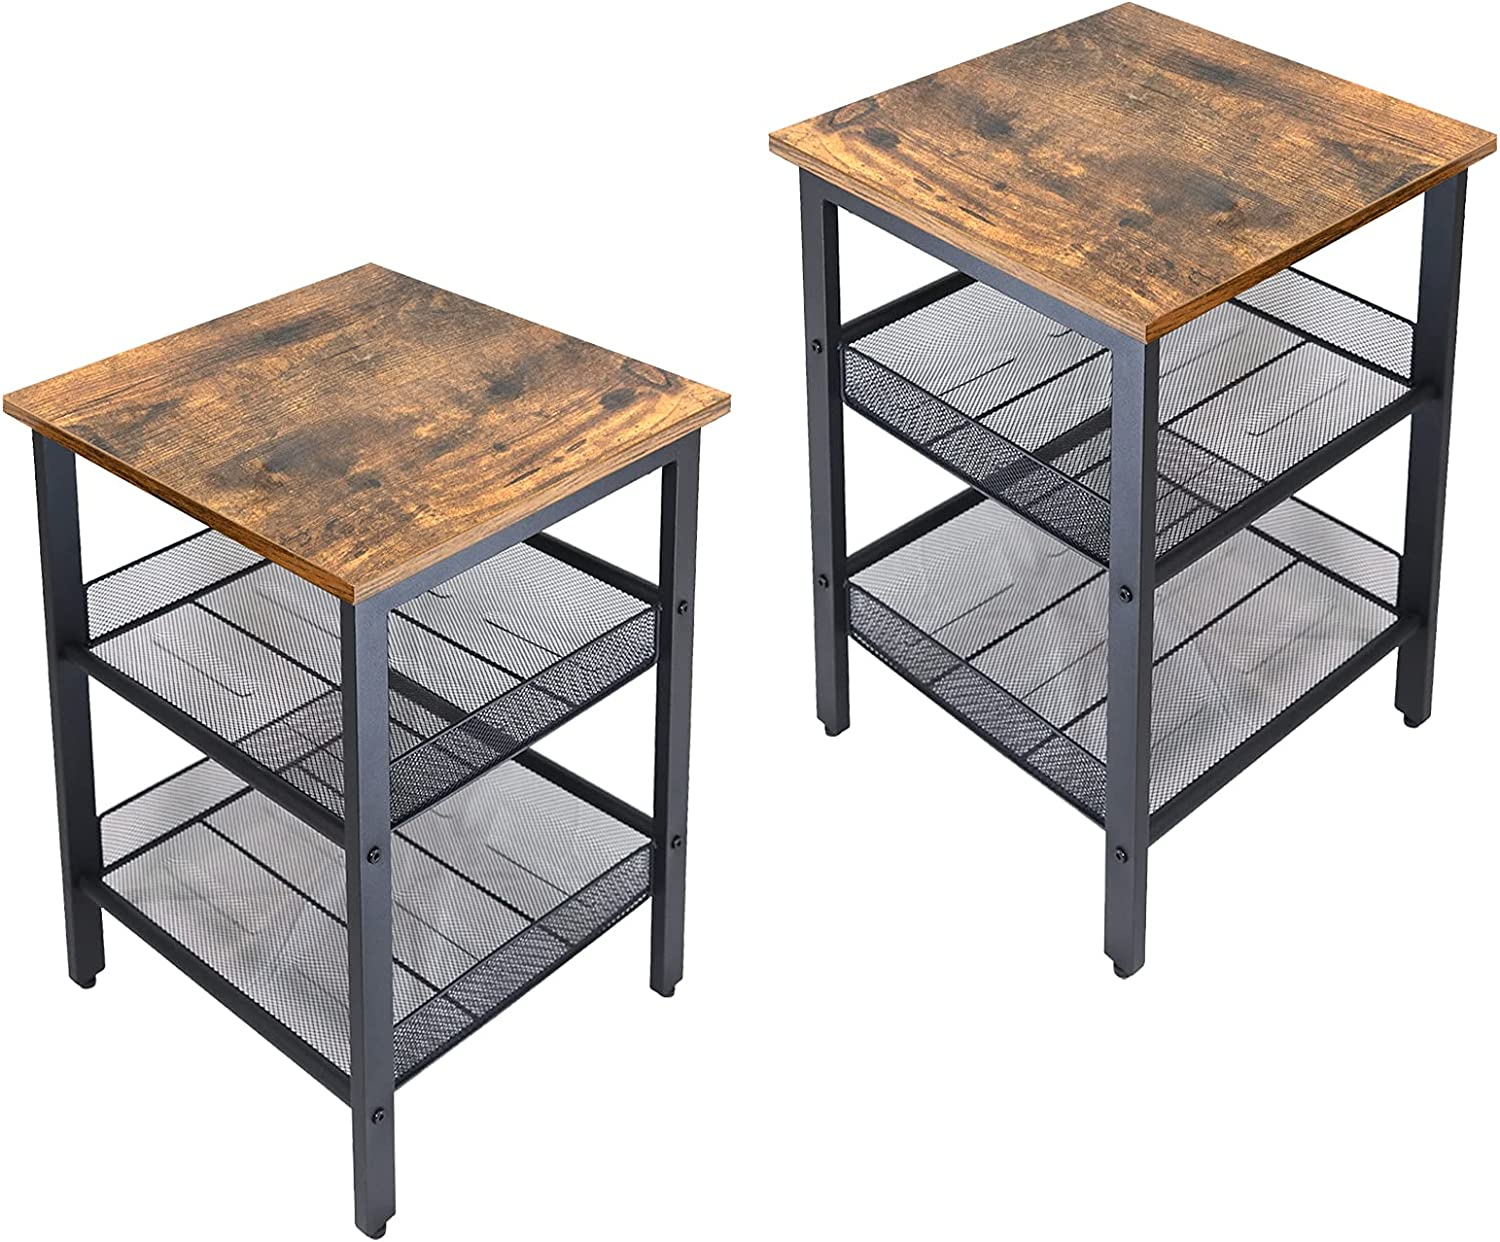 JPNTOYE End Table Set of Genuine Sales of SALE items from new works Free Shipping 2 Nightstand Living Industrial Room Ta